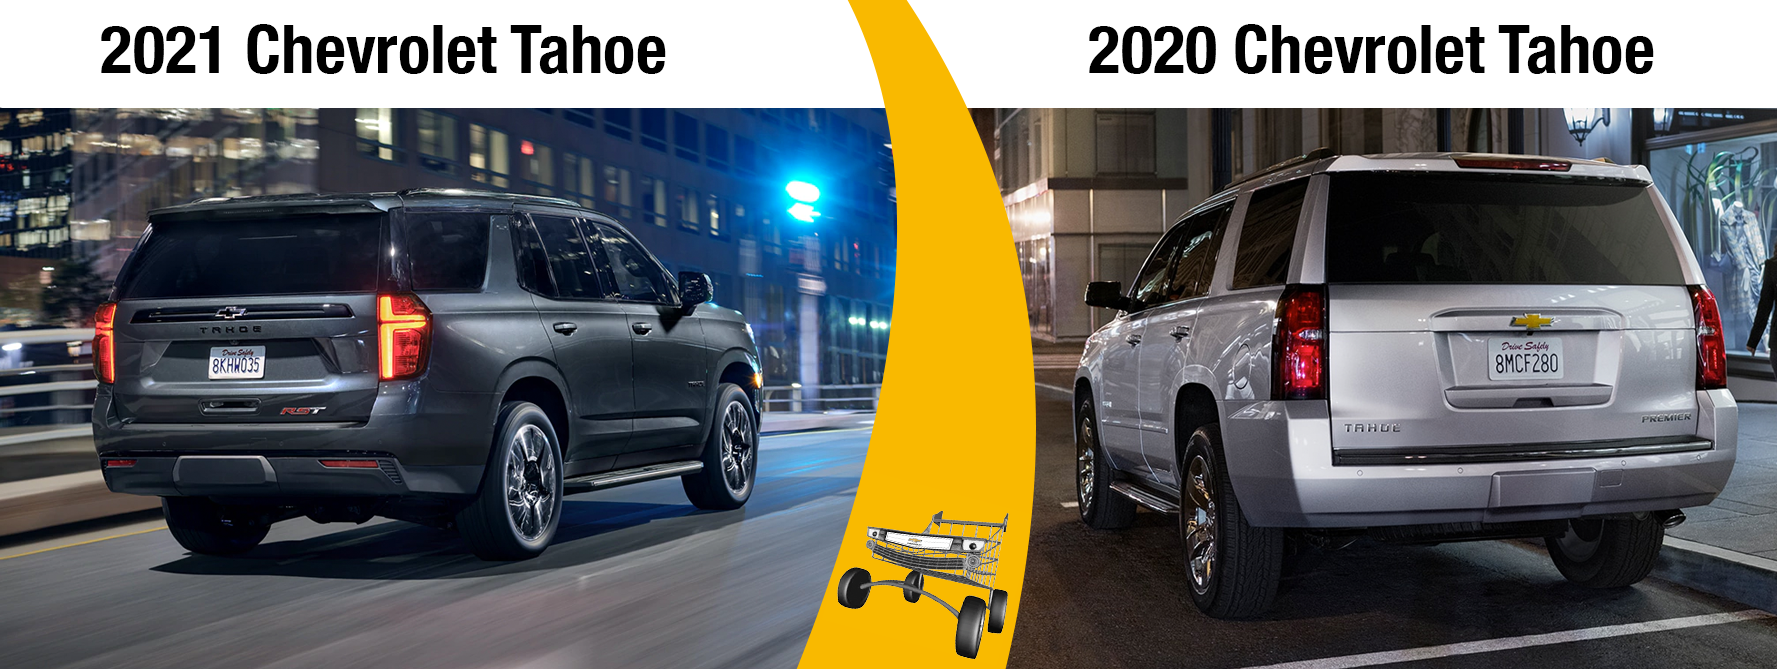 2021 Tahoe Exterior and Size